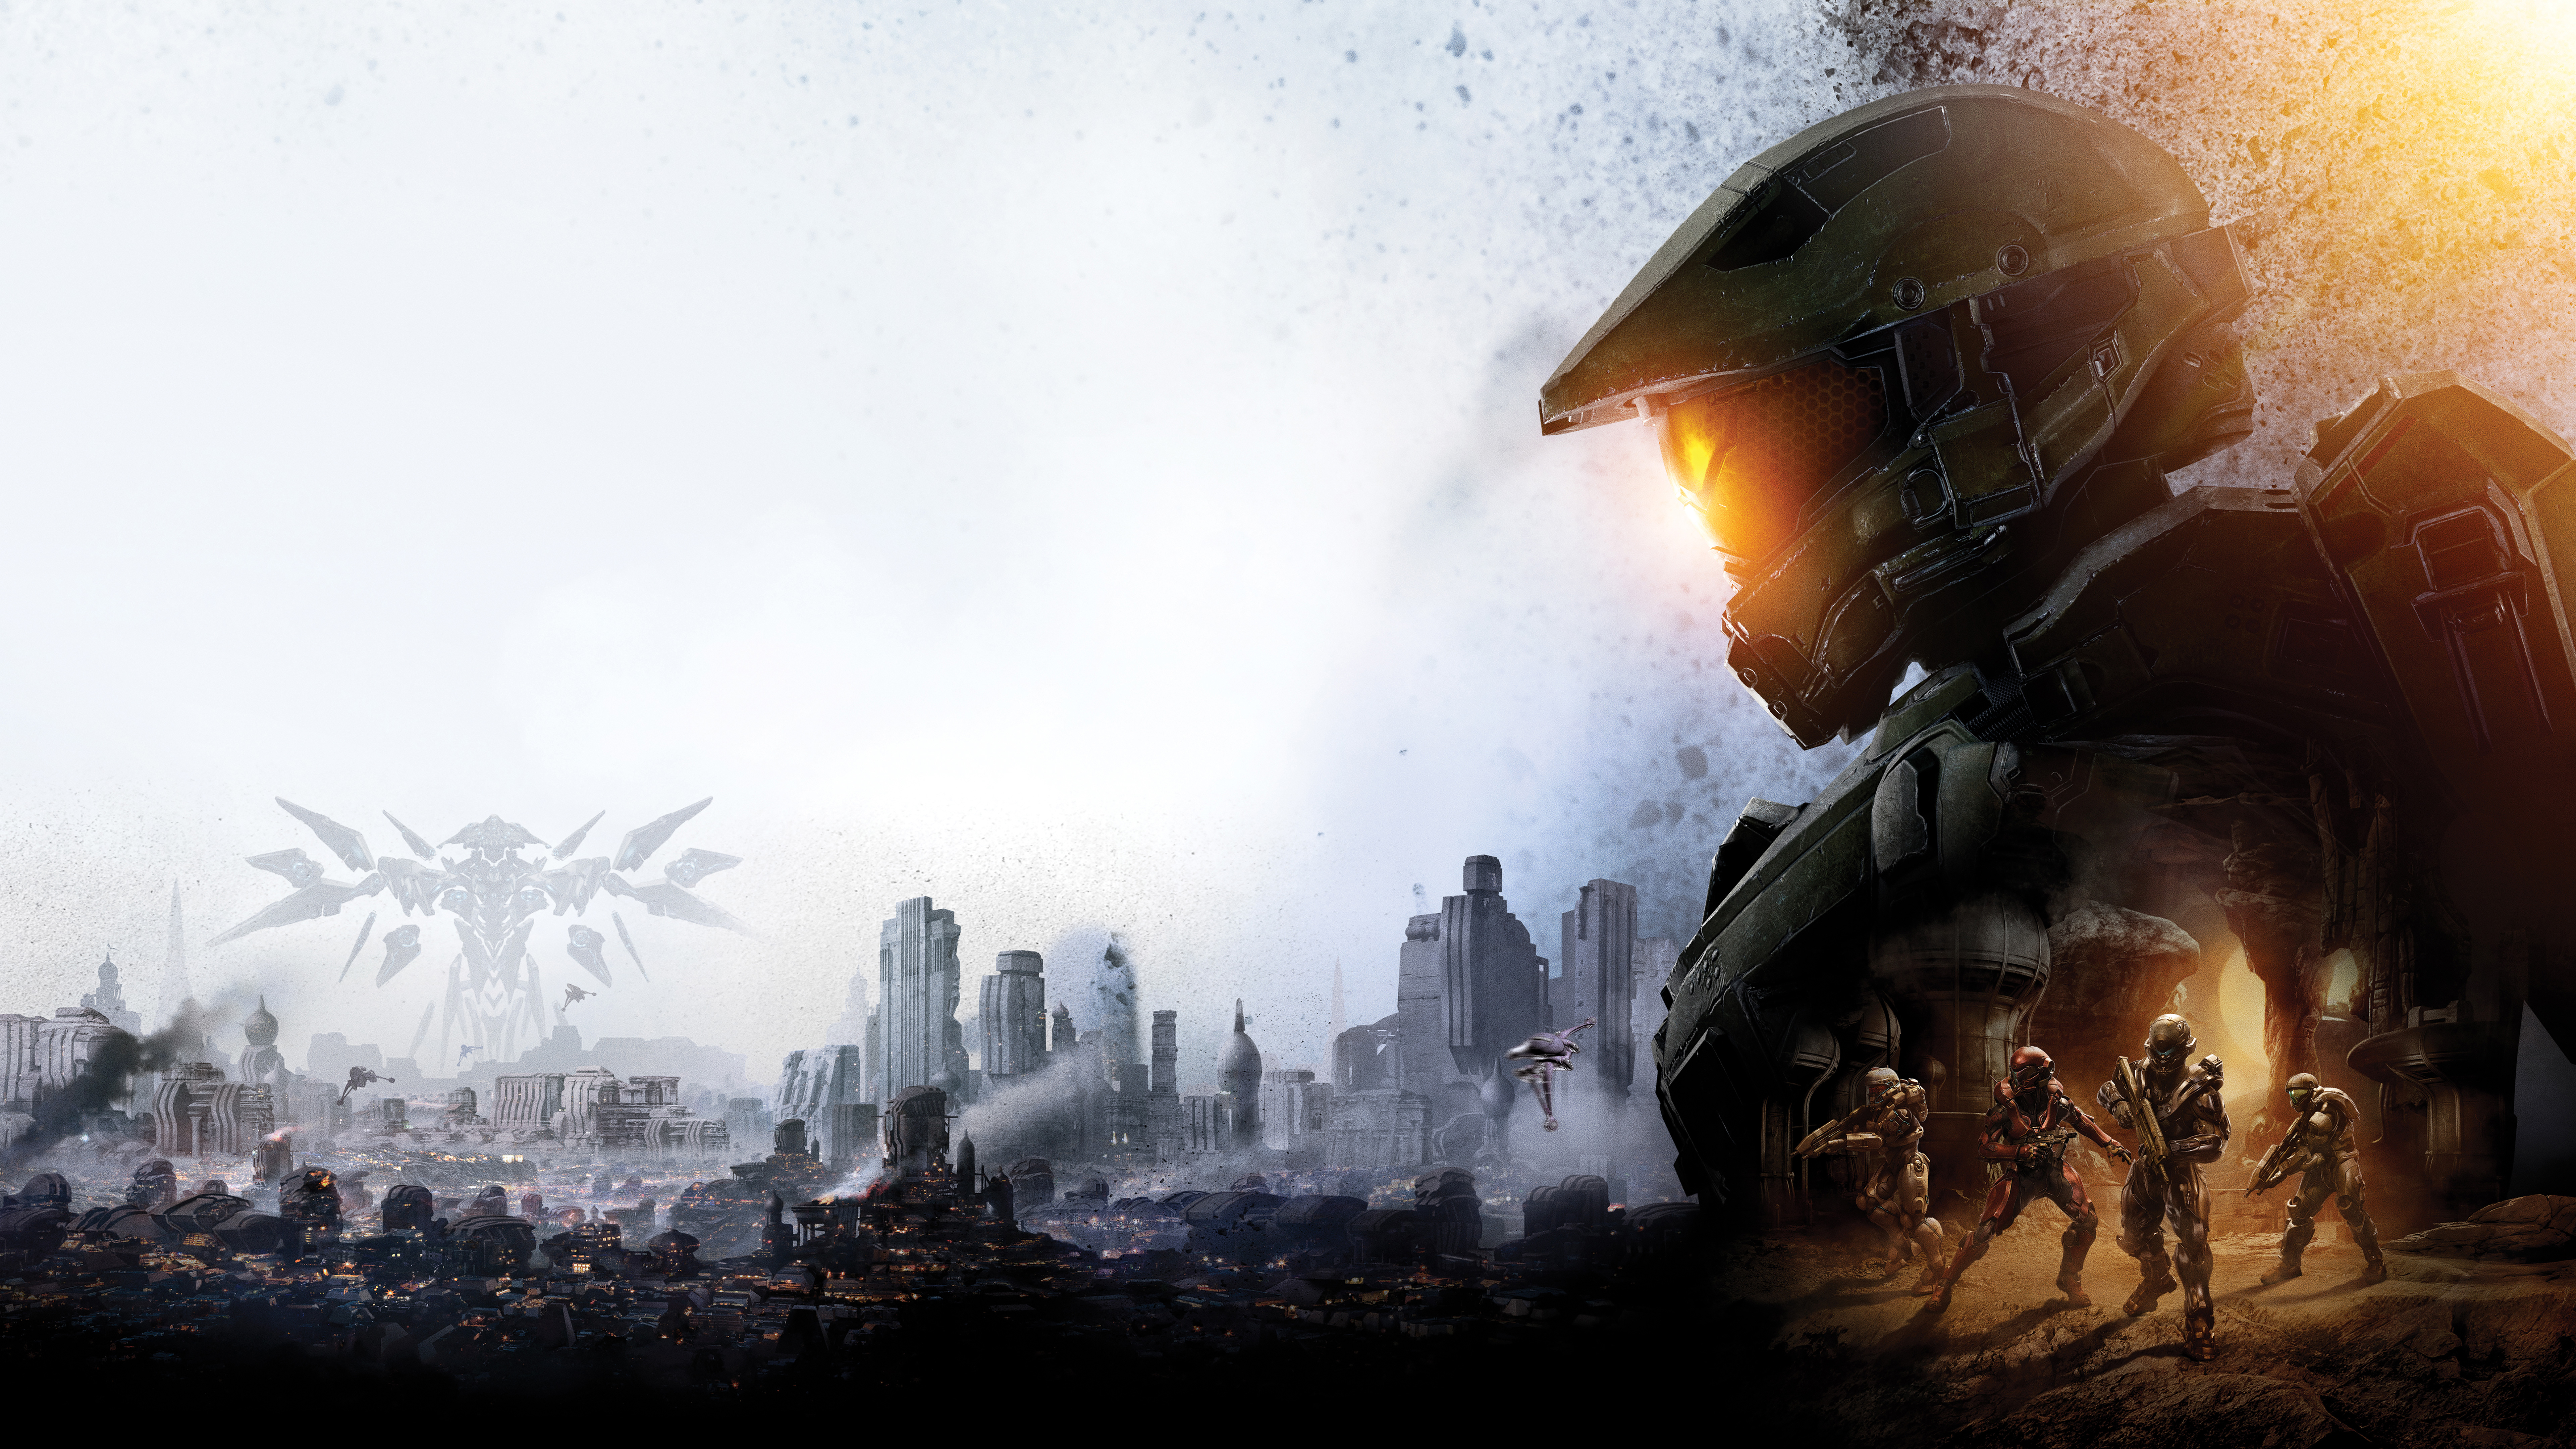 Master Chief Halo 5 8k, HD Games, 4k Wallpapers, Images ...